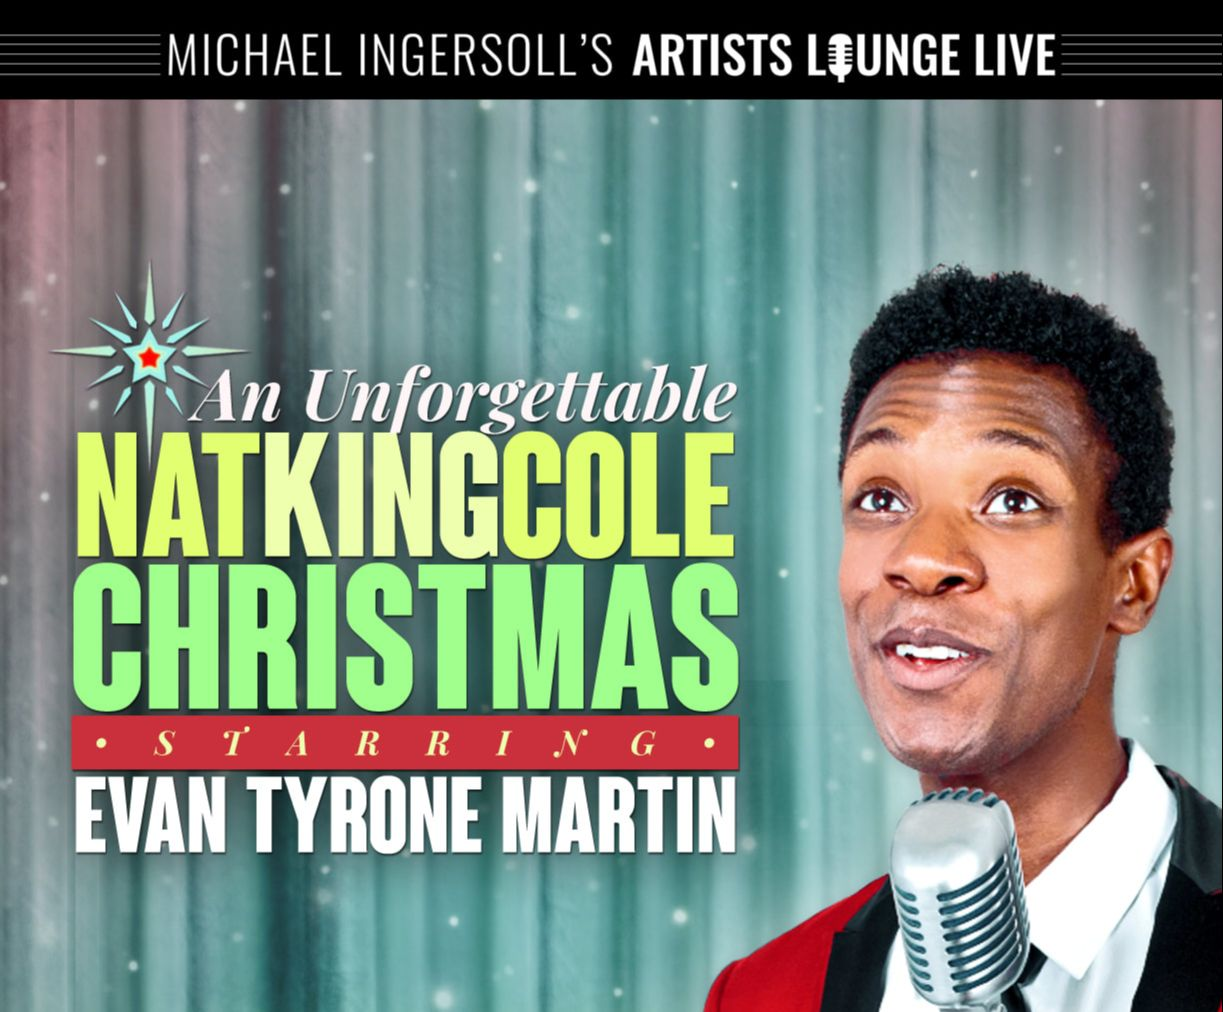 Nat King Cole Christmas.Nat King Cole Christmas The Official Website Of The Ames